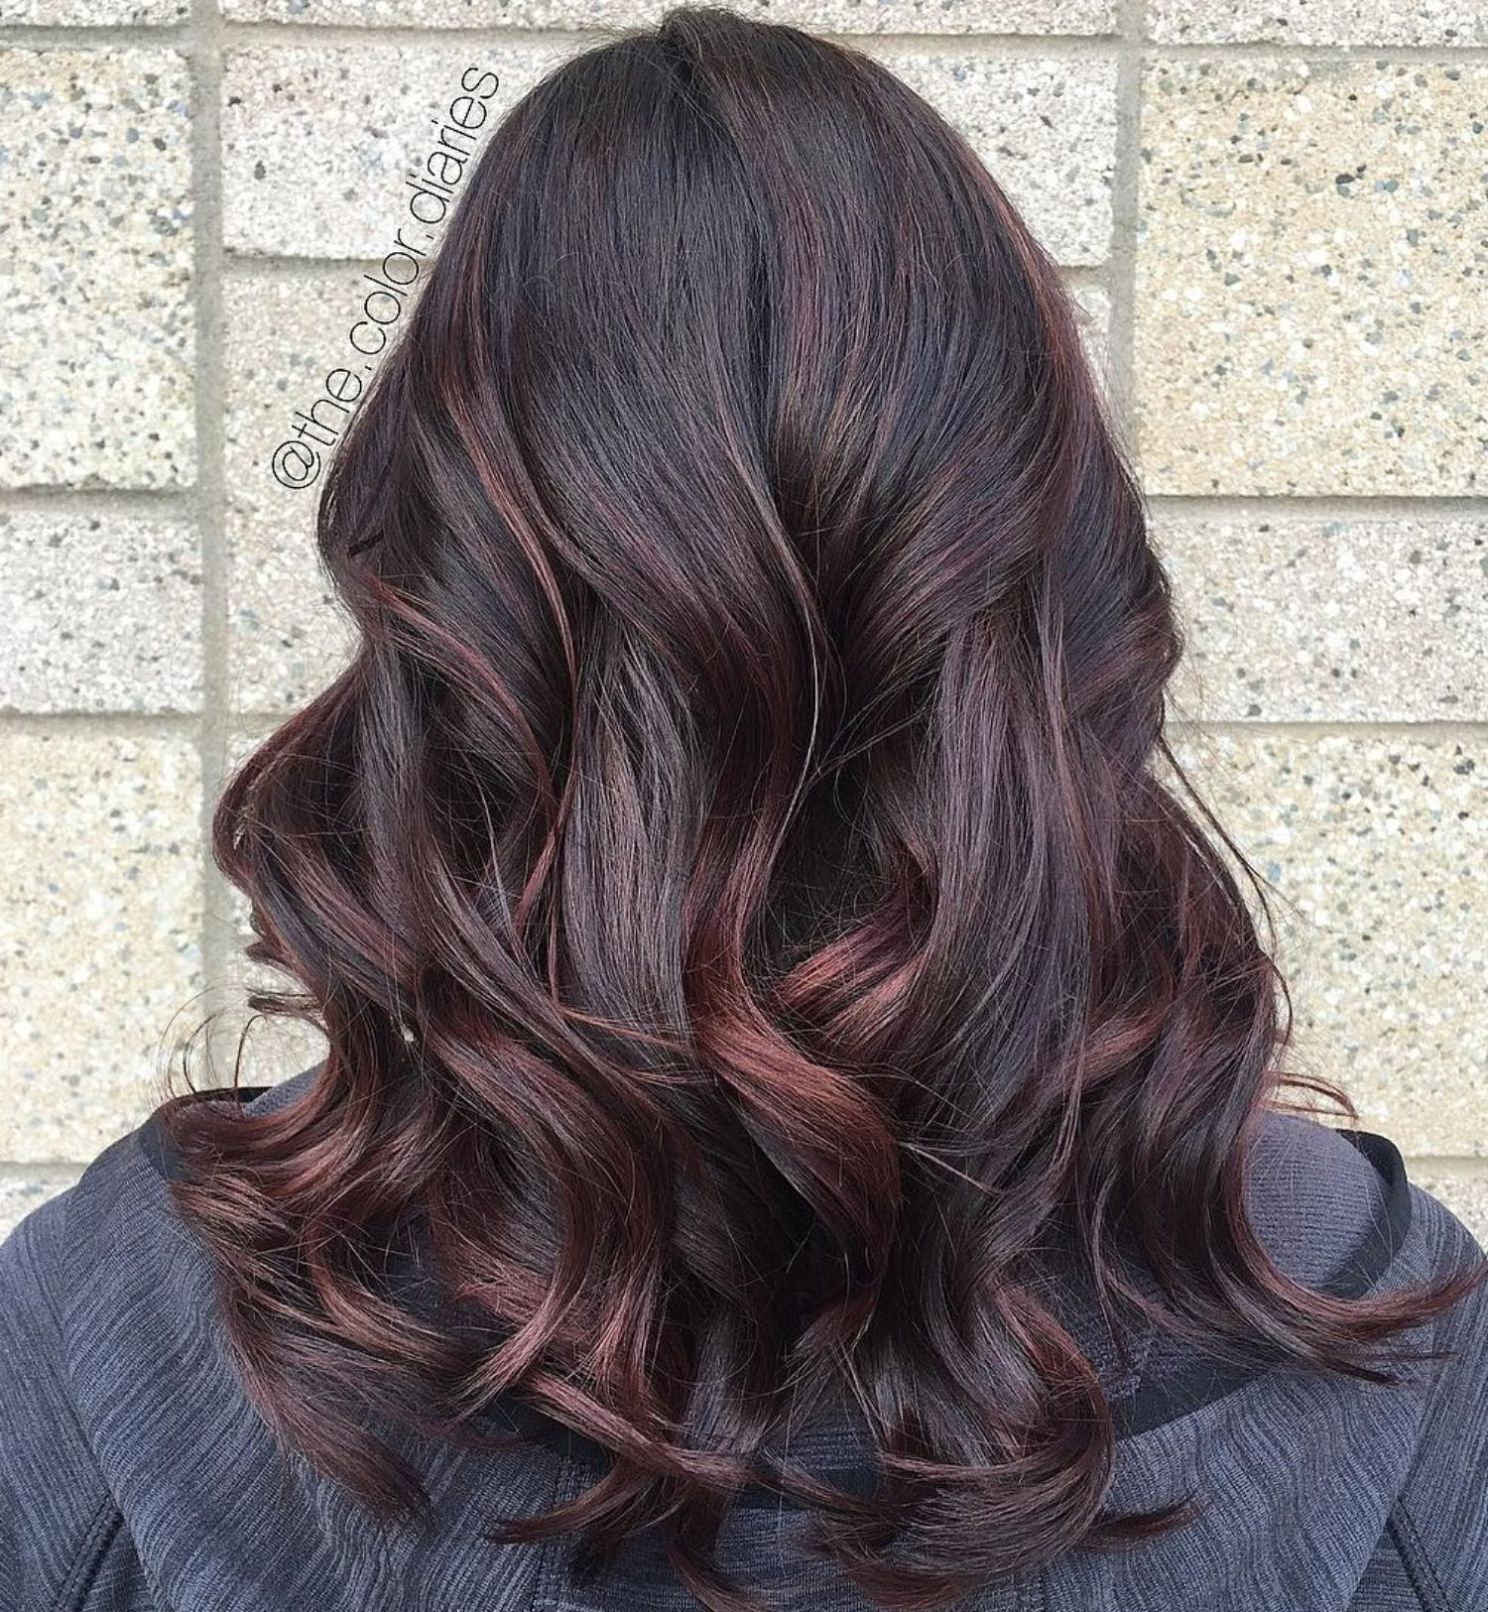 45 Shades Of Burgundy Hair Dark Burgundy Maroon Burgundy With Red Purple And Brown Highlights Red Balayage Hair Burgundy Hair Hair Color Burgundy